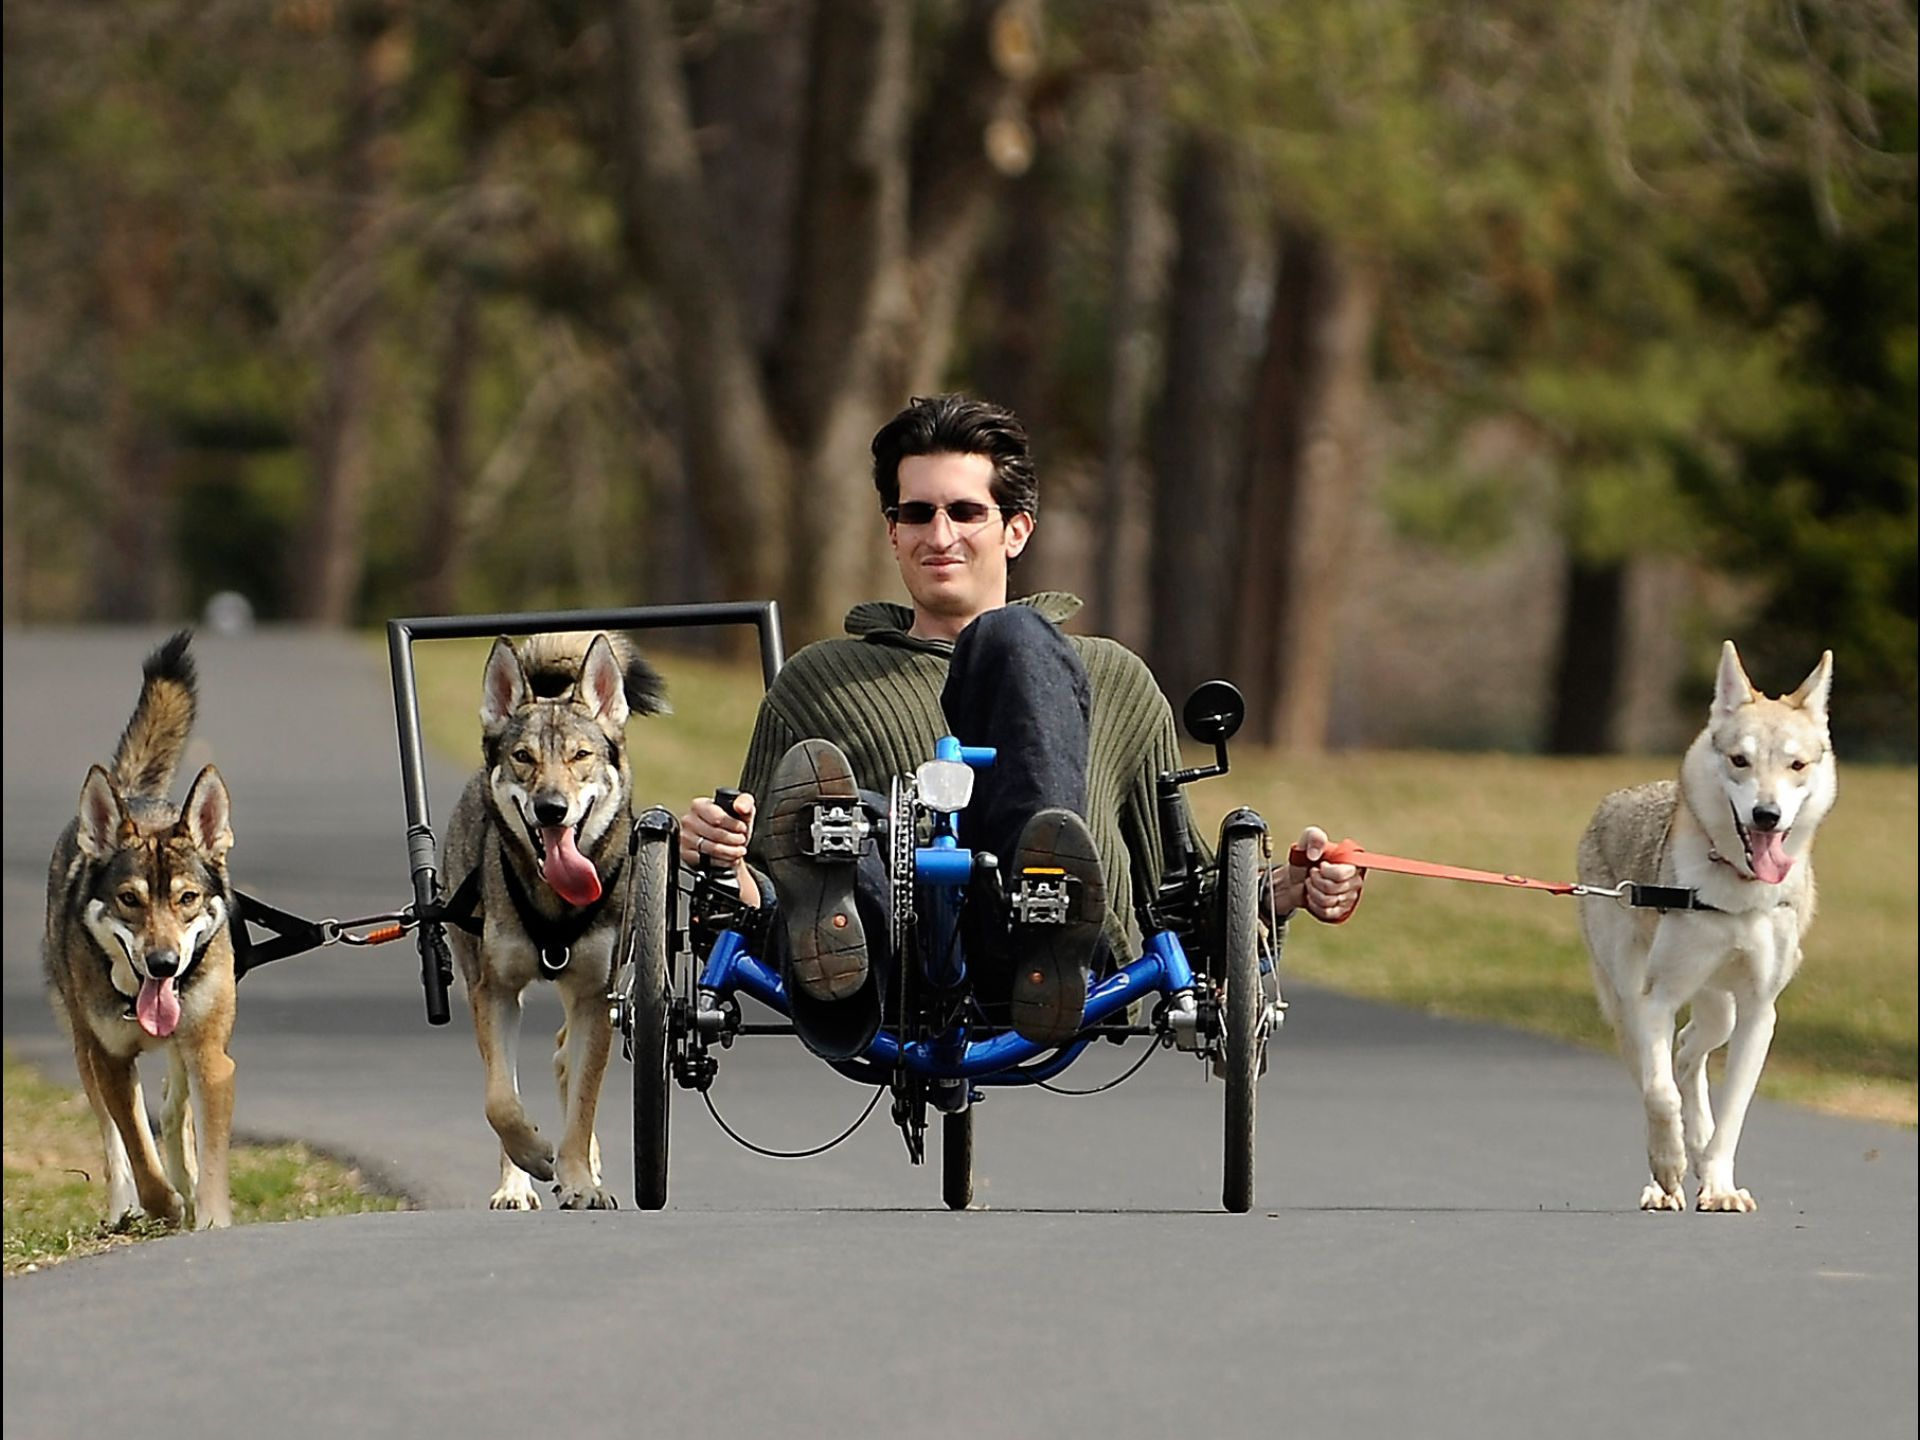 Ben Premack Rides His Custom Recumbent Bicycle As His Dogs Pull